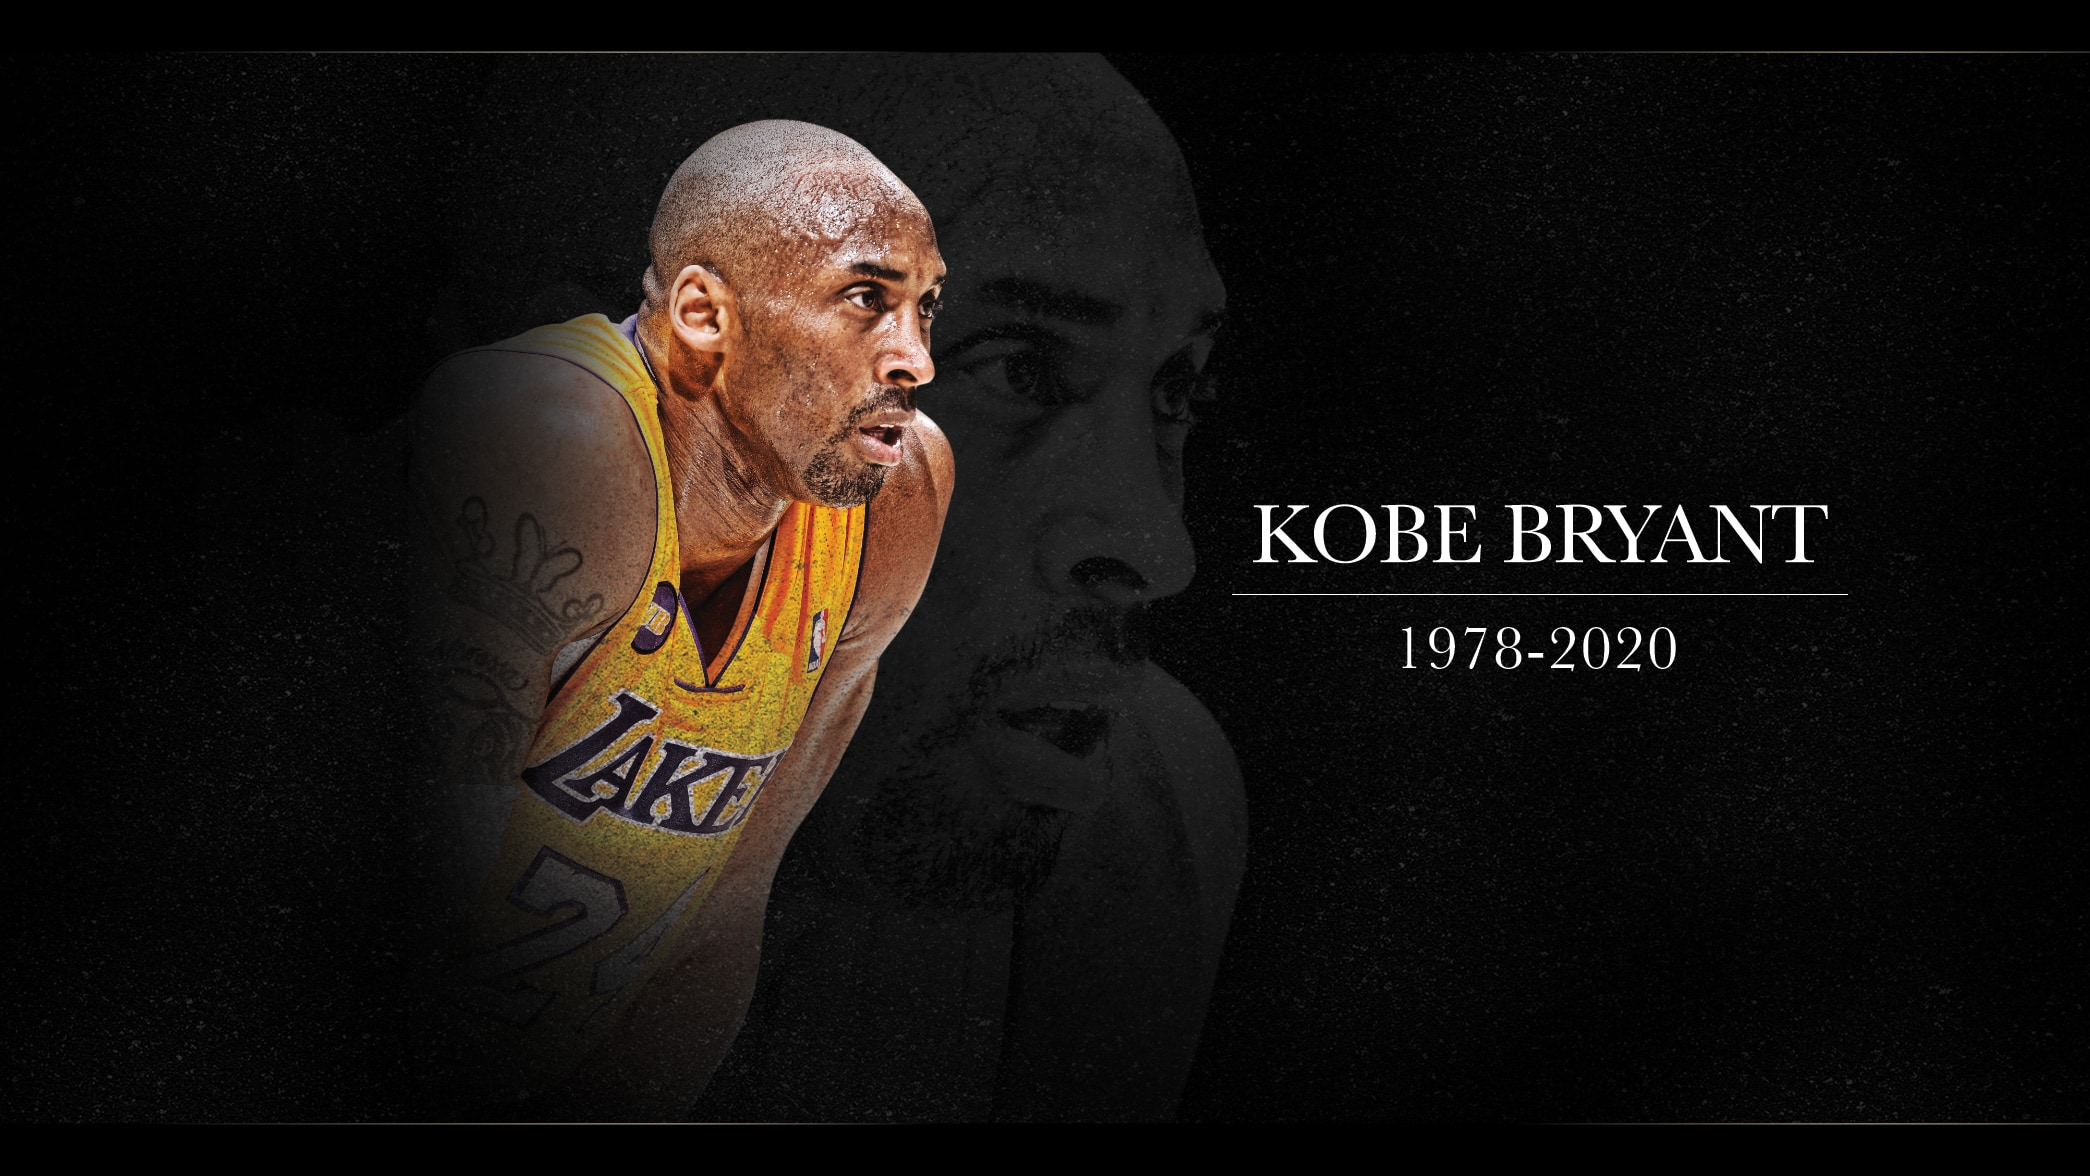 NBA Family Mourns Kobe: 'He was legendary, inspiring globally'